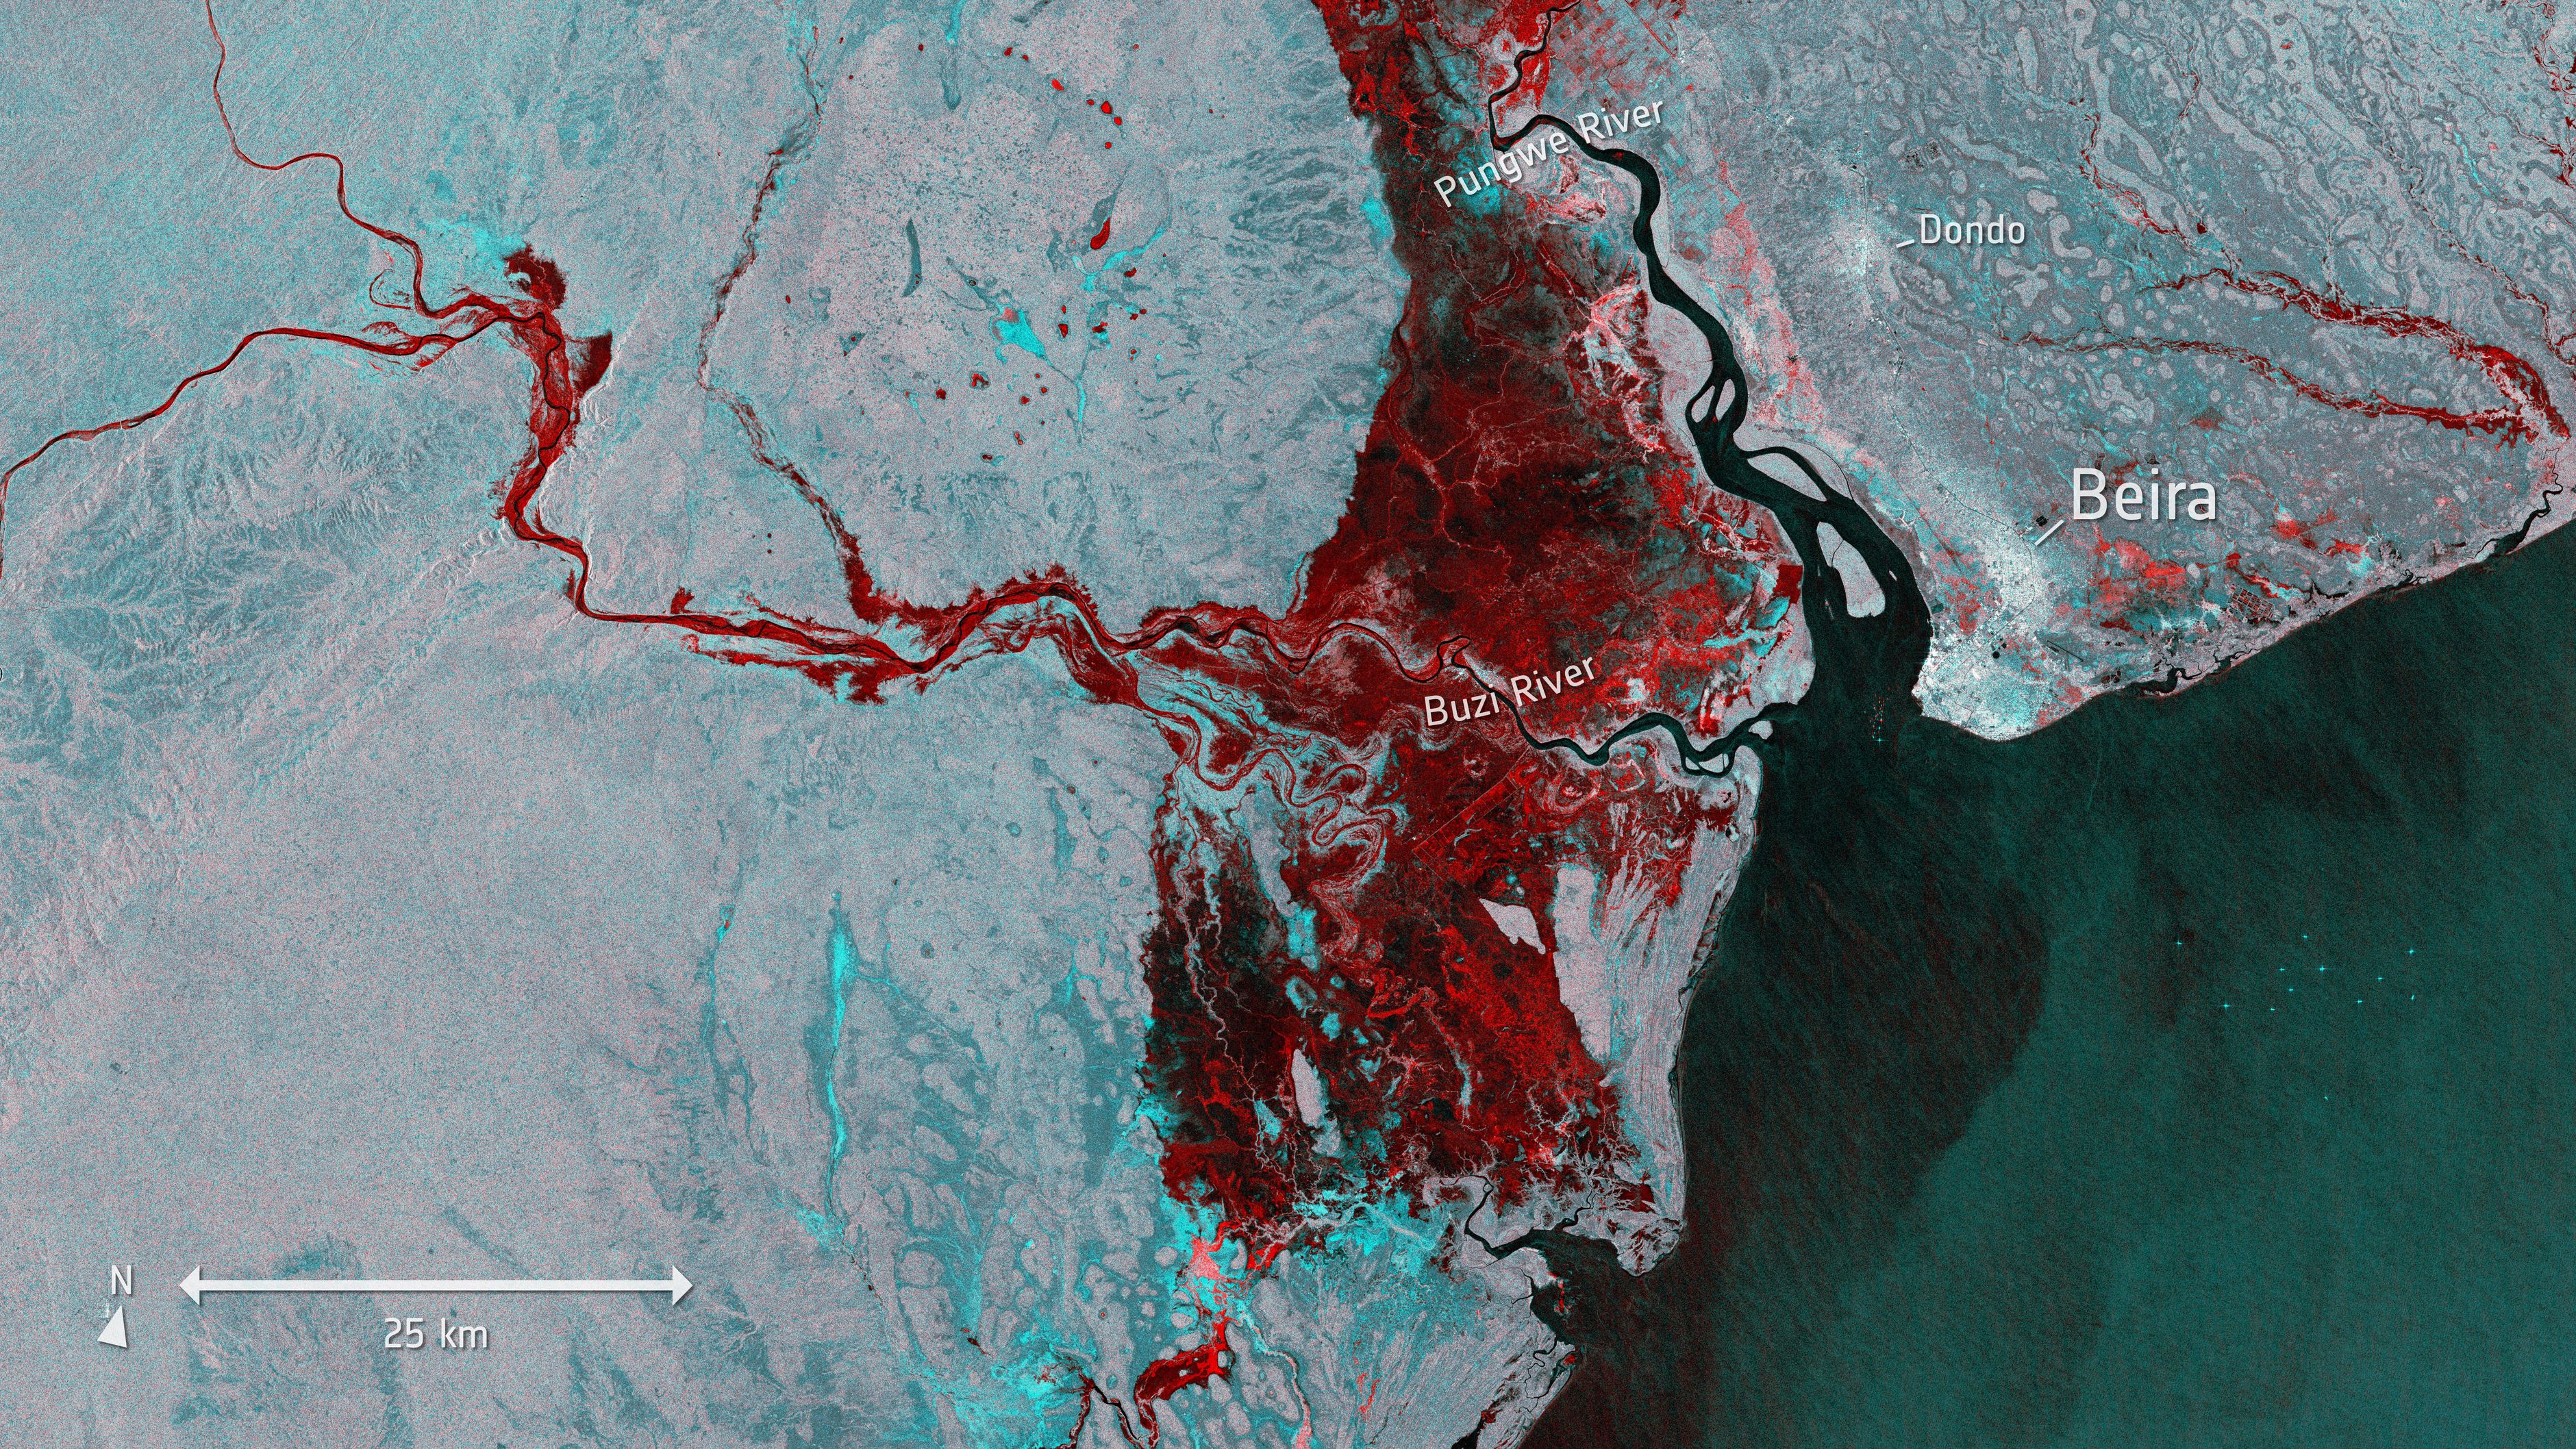 technologyreview.com - Charlotte Jee - Satellites and drones are showing the devastating extent of Cyclone Idai's damage